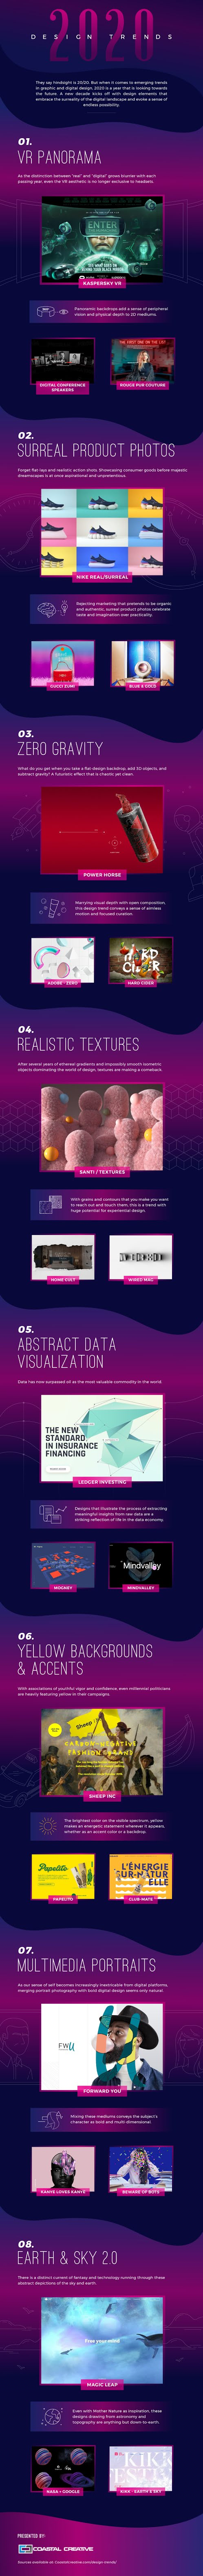 The Digital & Graphic Design Trends of 2020 #infographic